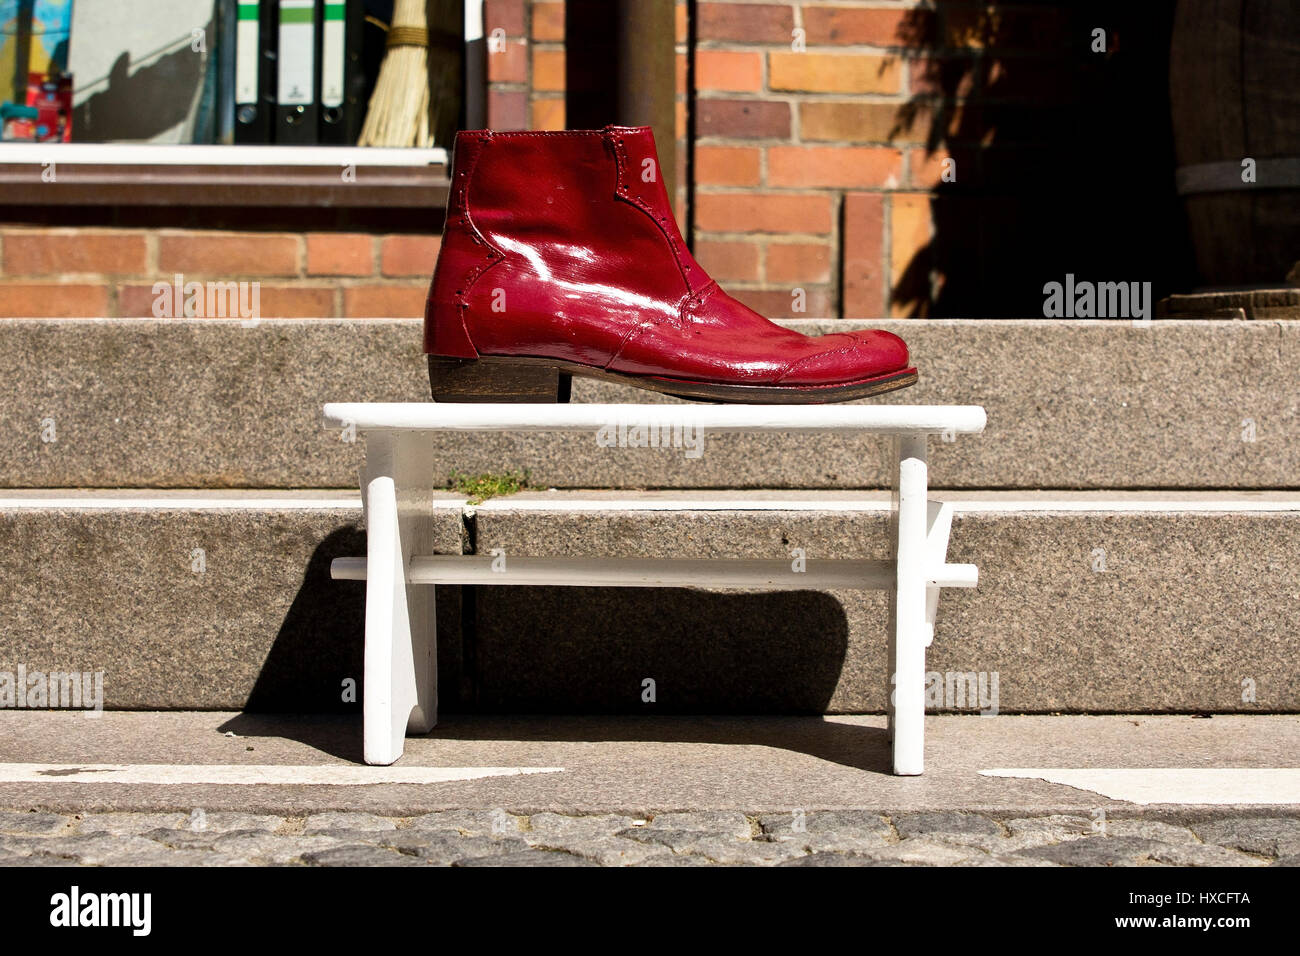 A red patent leather shoe on a white wooden stool before a business, A red clever leather shoes on a white wooden - Stock Image